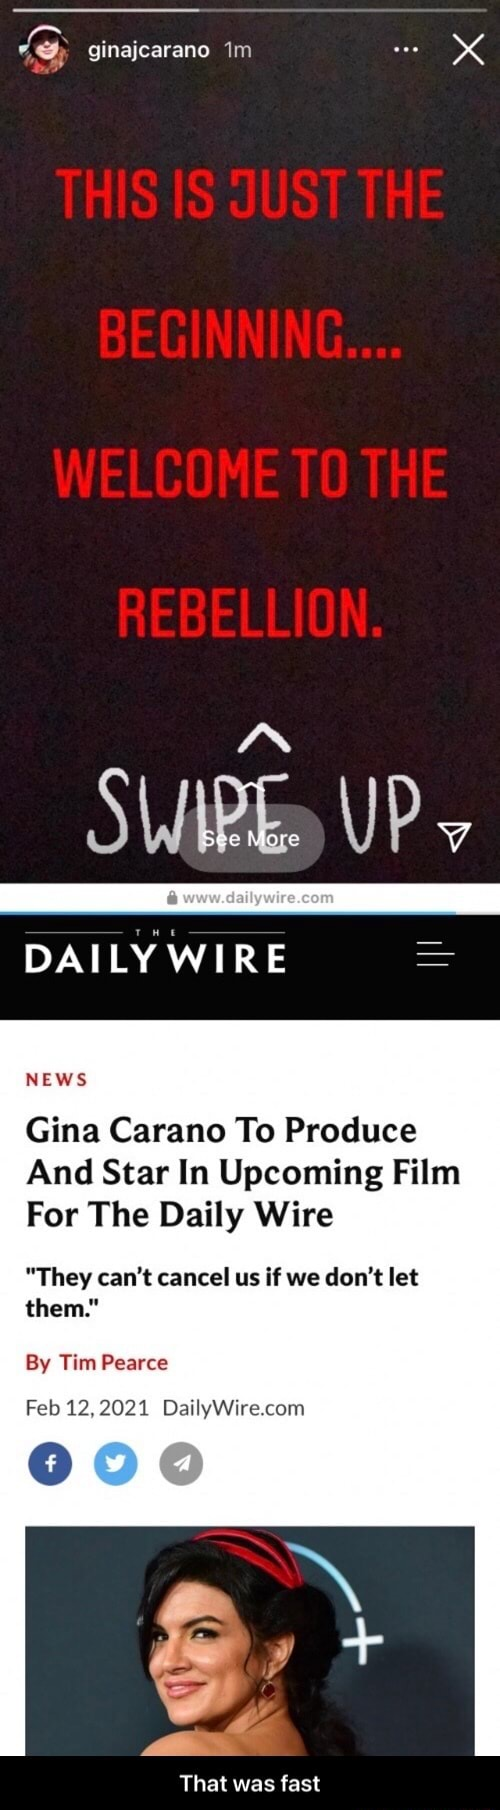 Ginajcarano im See More UP DAILY WIRE NEWS Gina Carano To Produce And Star In Upcoming Film For The Daily Wire They can not cancel us if we do not let them. By Tim Pearce Feb 12,2021 Day Wore com That was fast  That was fast memes